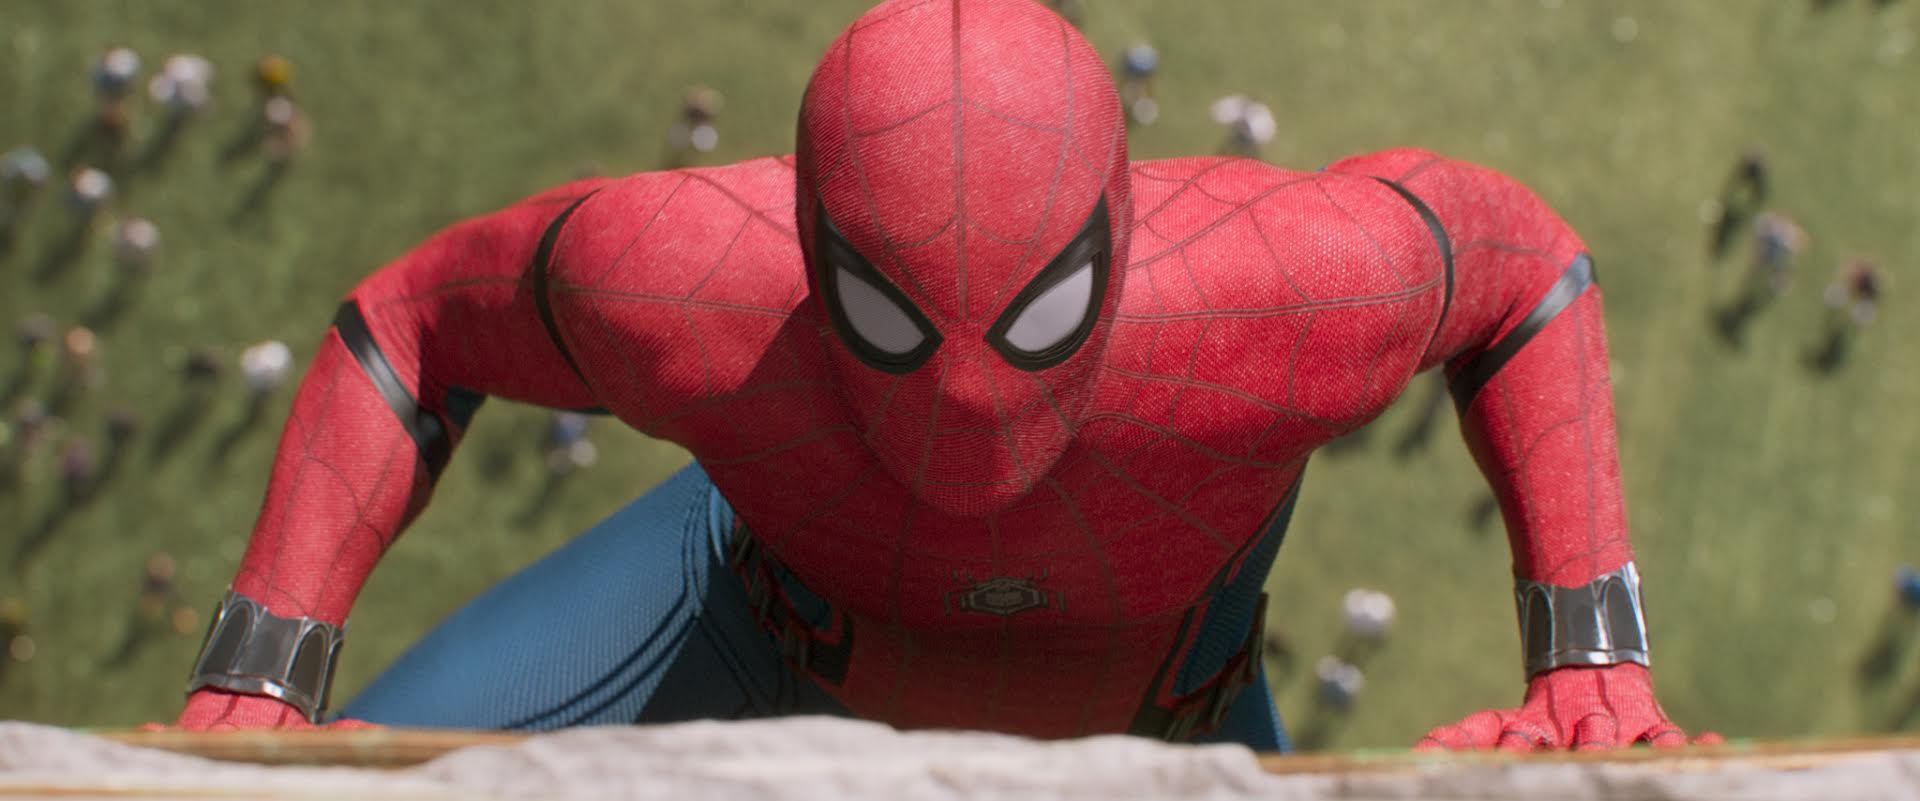 �spiderman homecoming� swings at no 1 in ph grosses